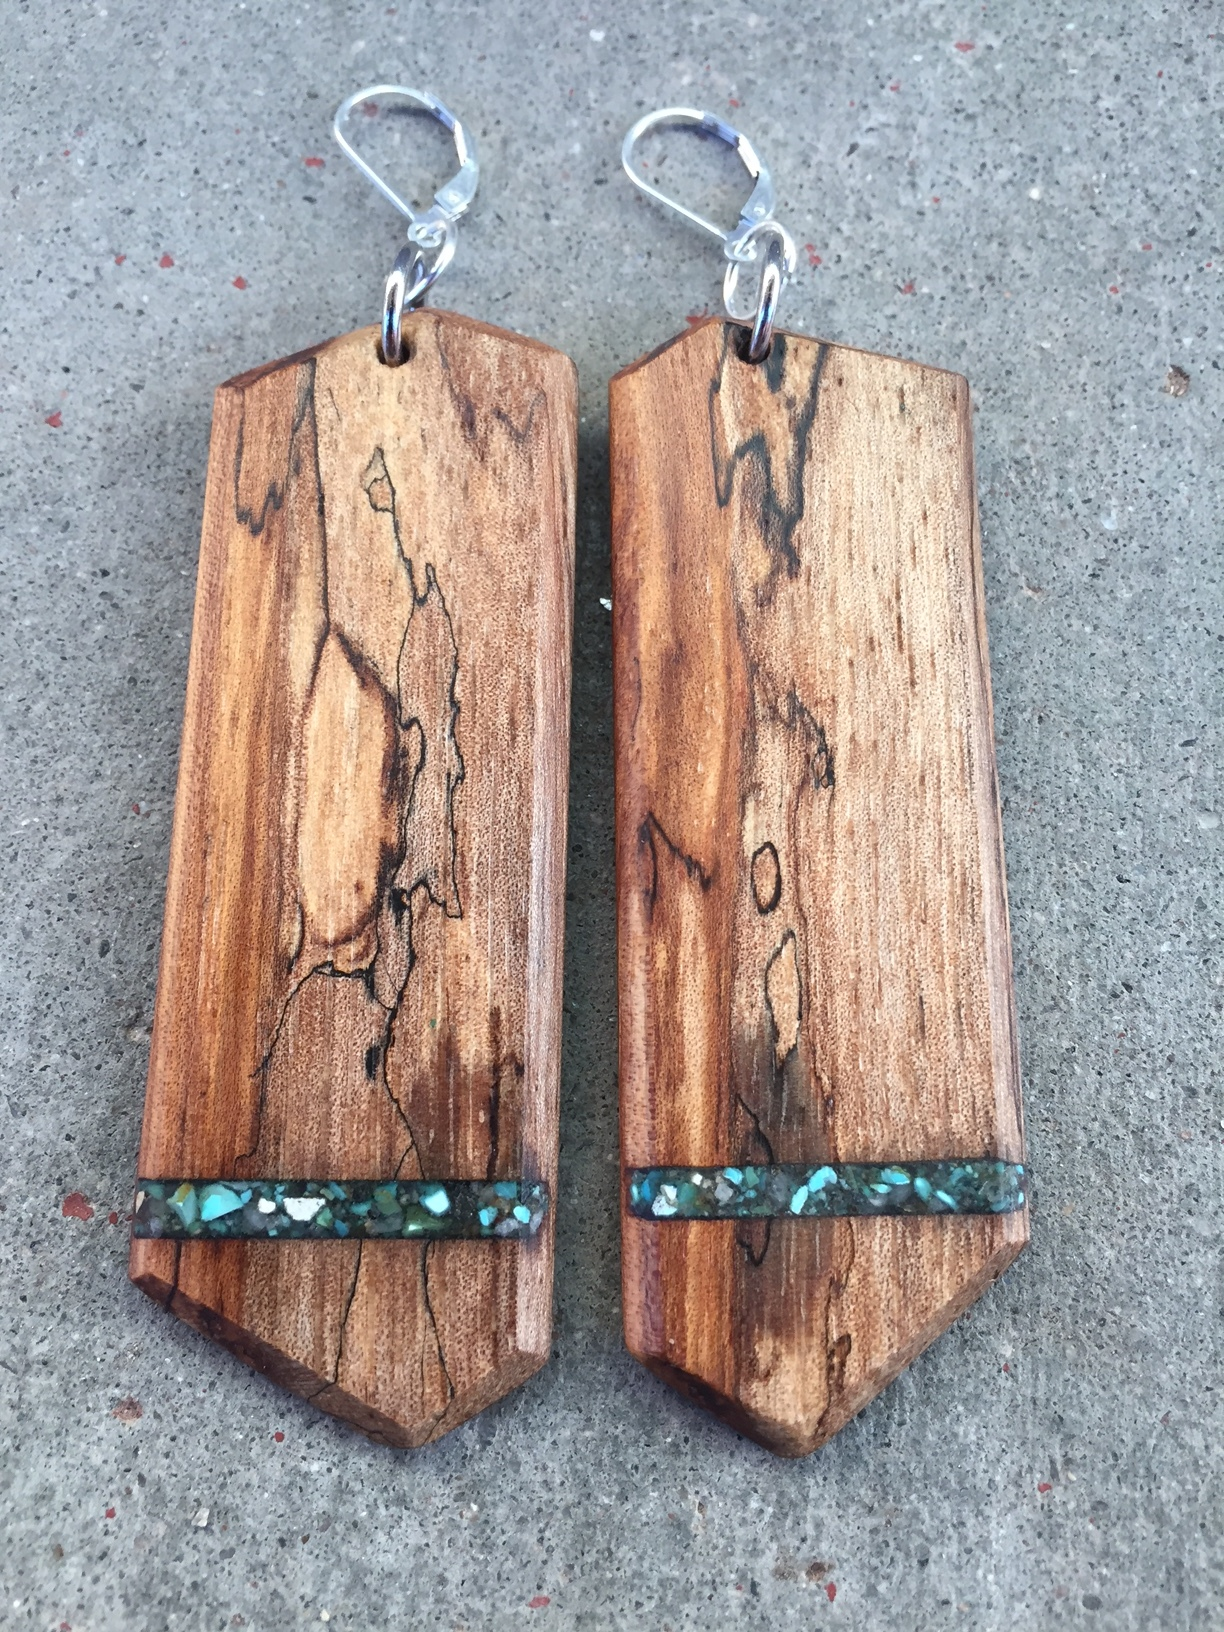 SPALTED PECAN W/ CERRILLOS TURQUOISE